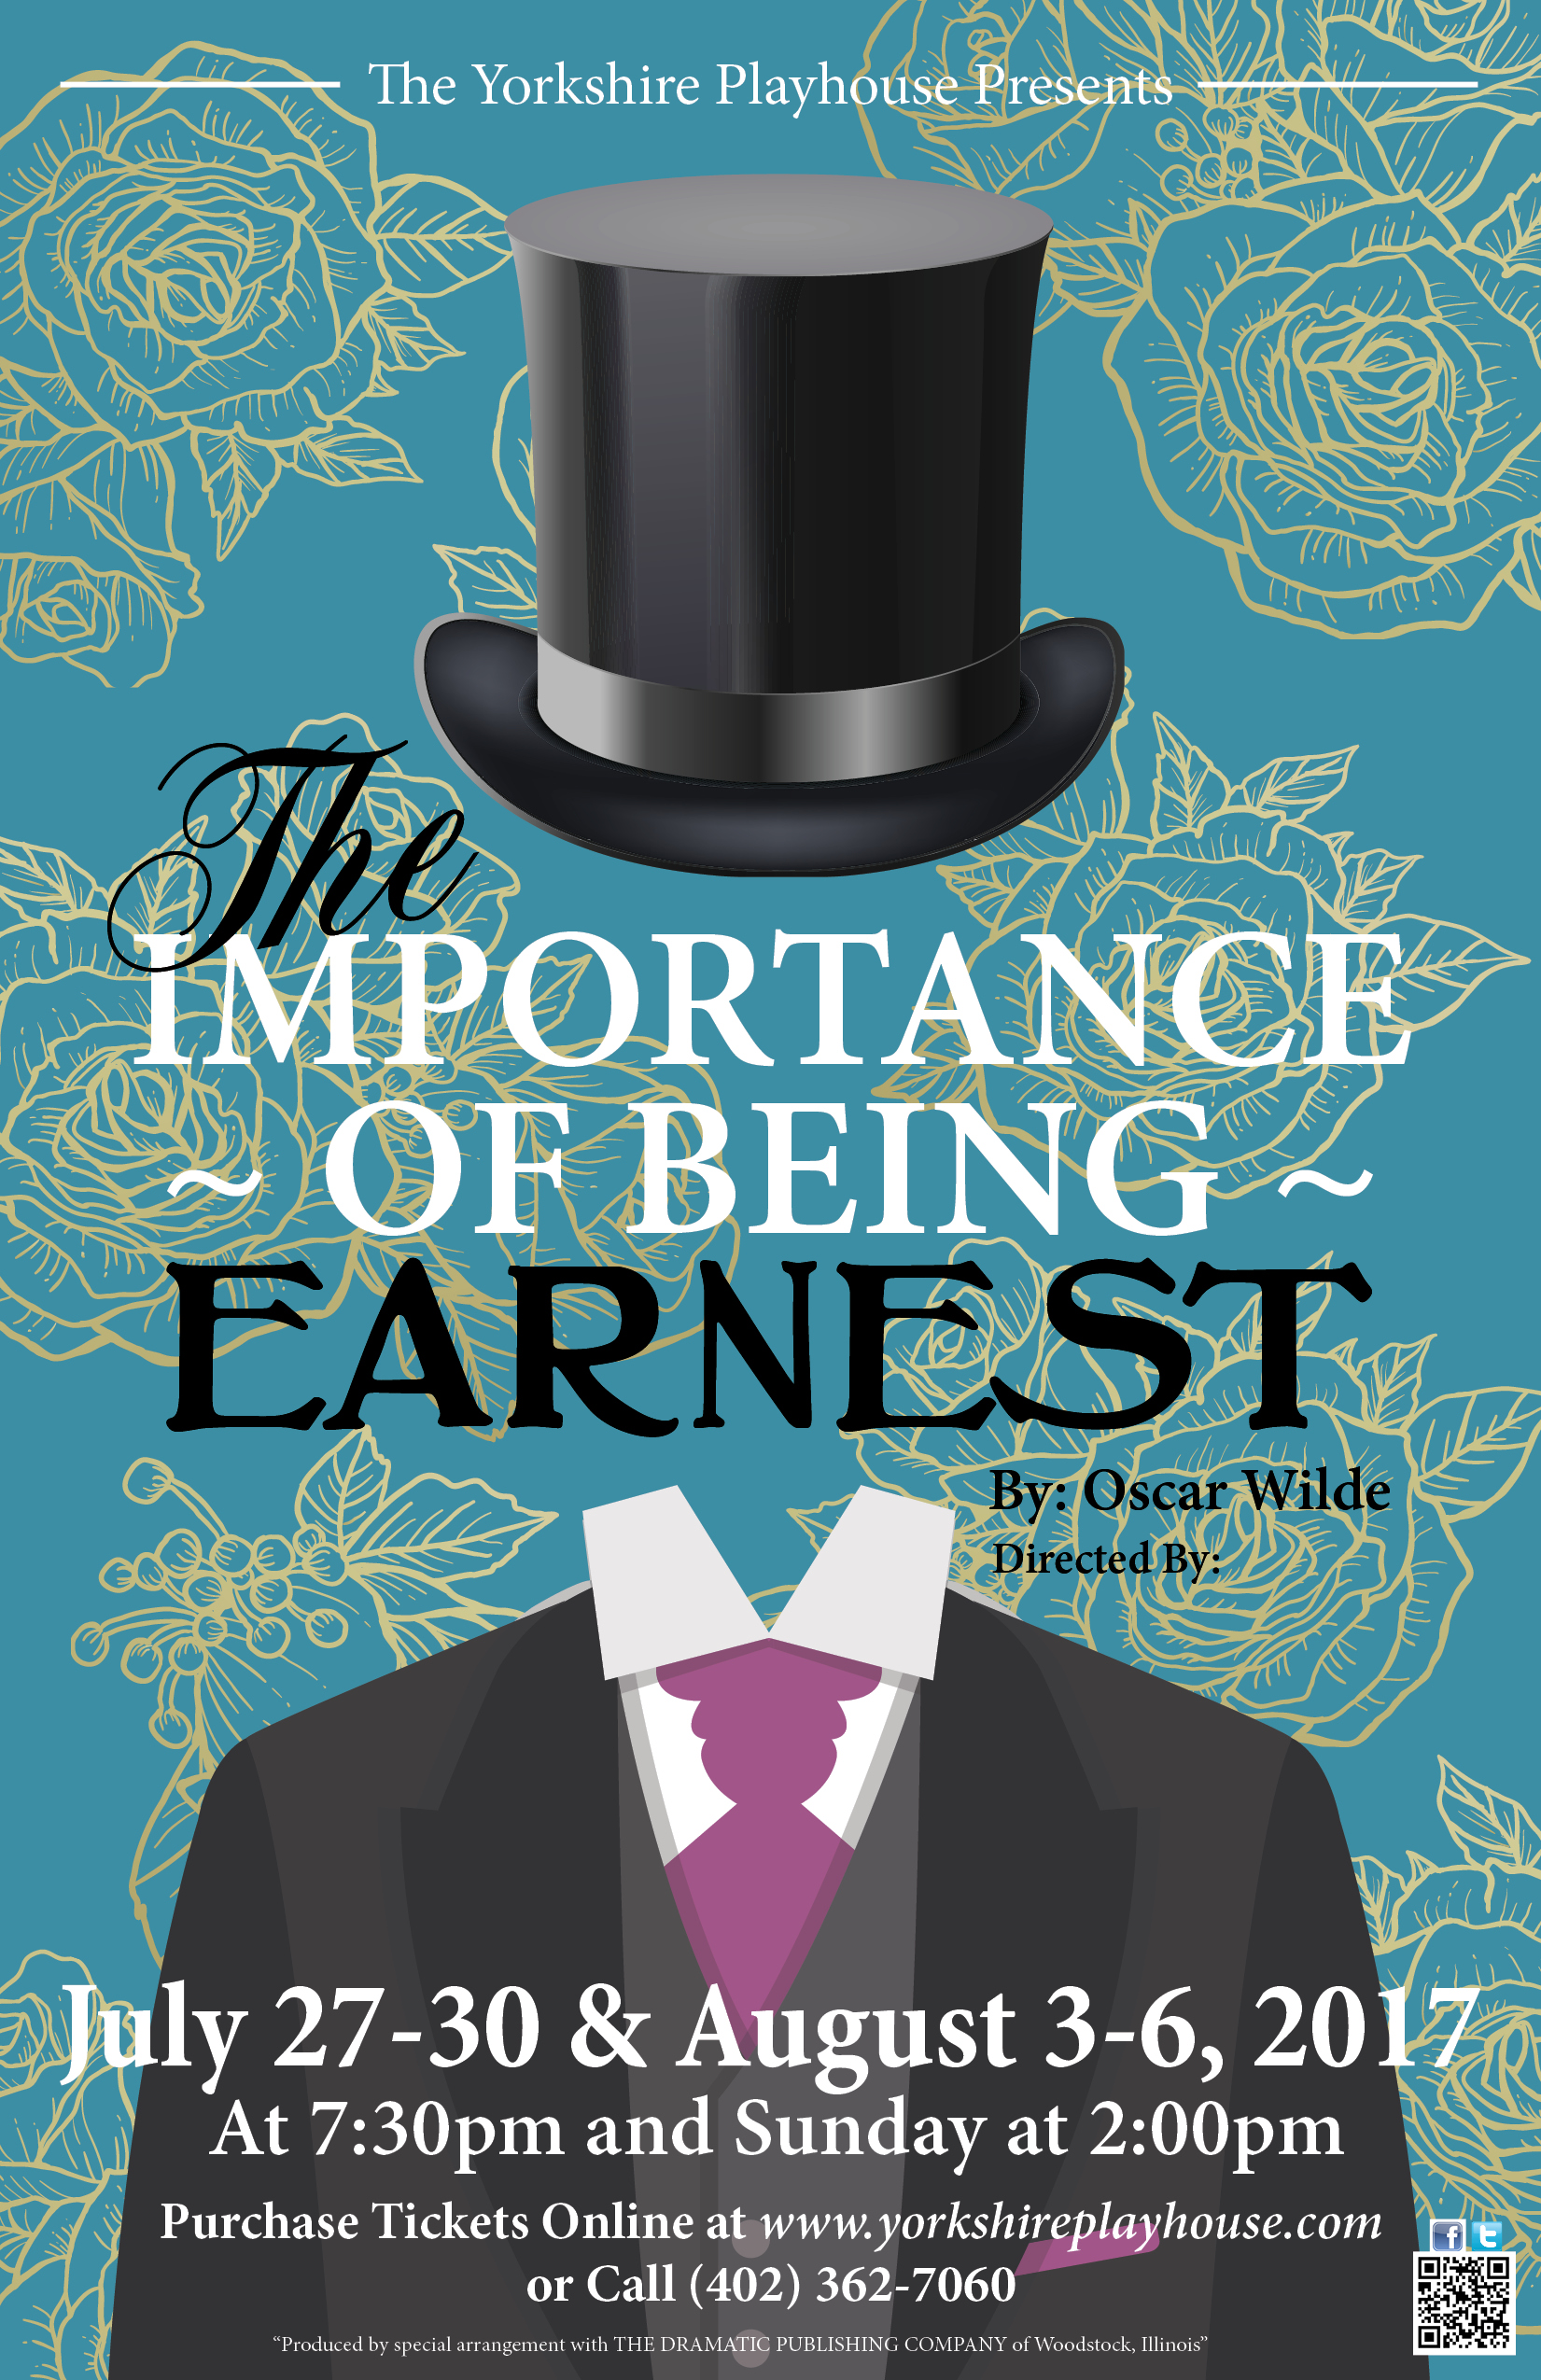 The Importance of Being Earnest -Poster - JPEG2.jpg